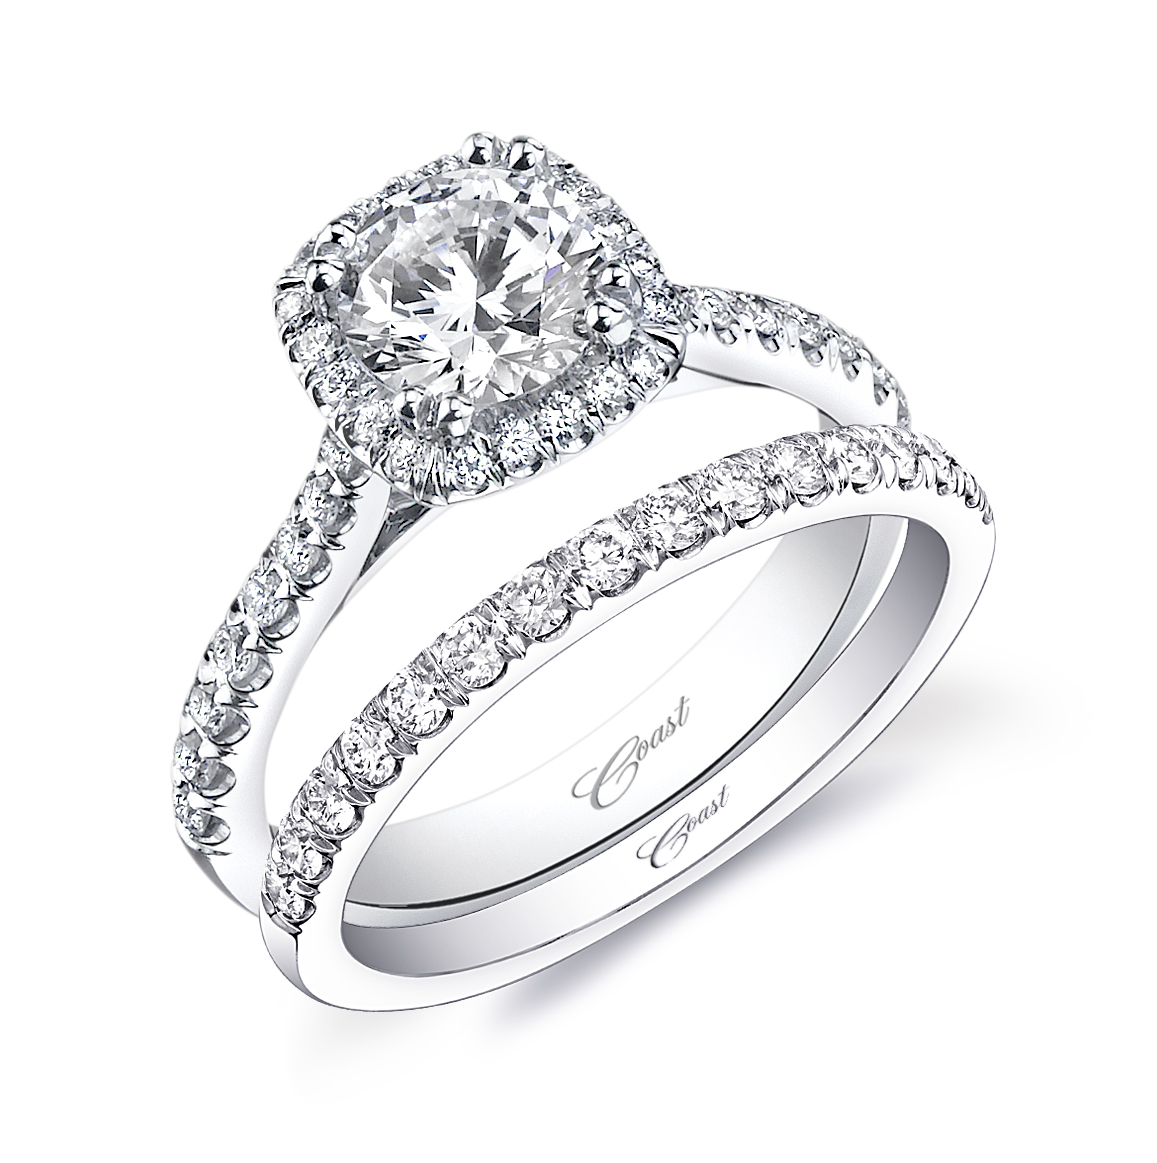 Matching Diamond Wedding Rings